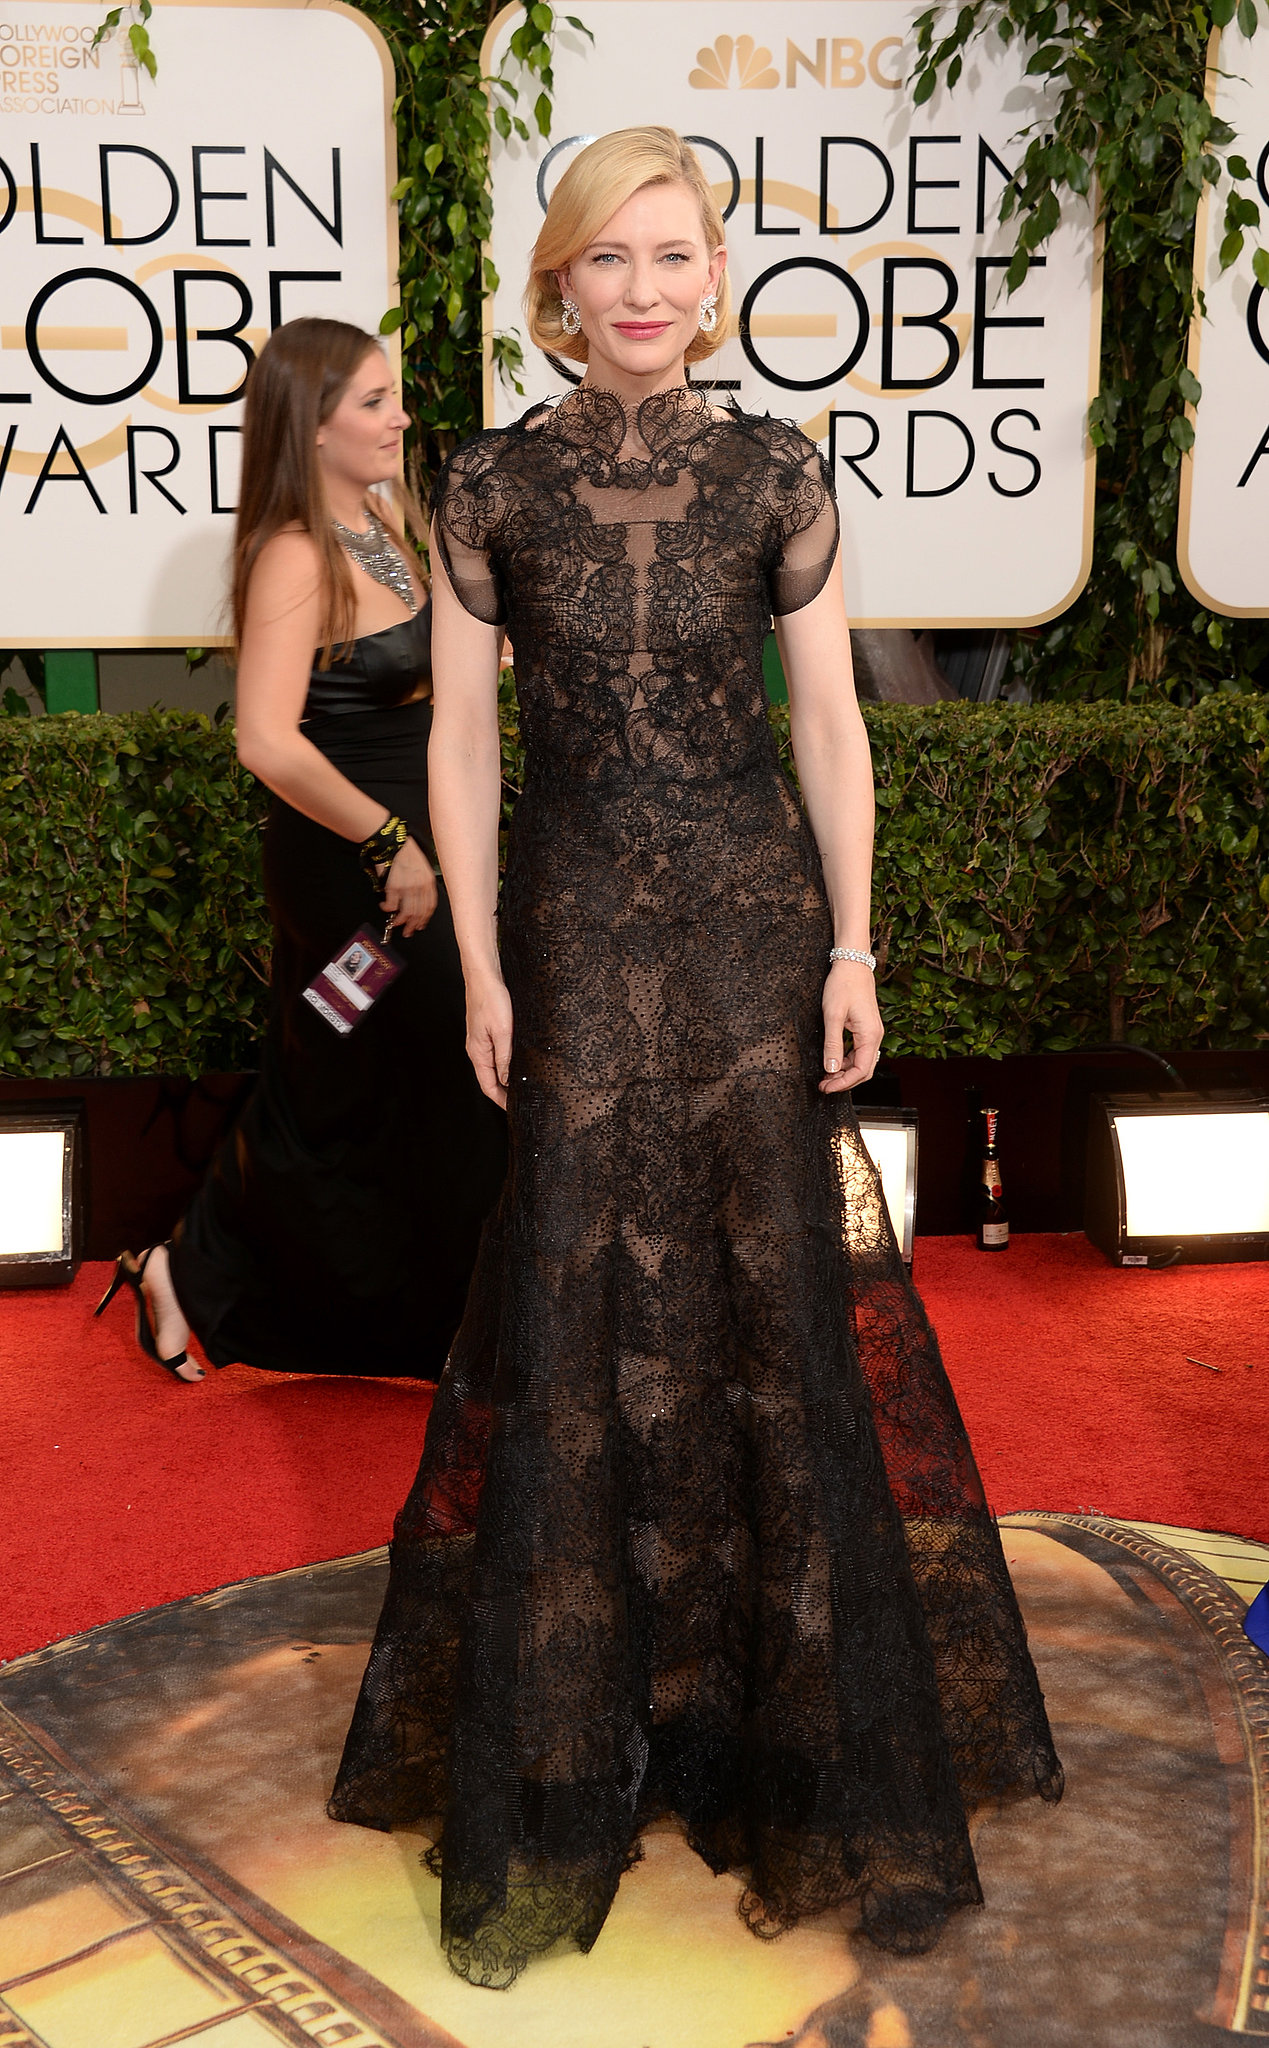 Cate Blanchett stole the show on the Golden Globes red carpet.